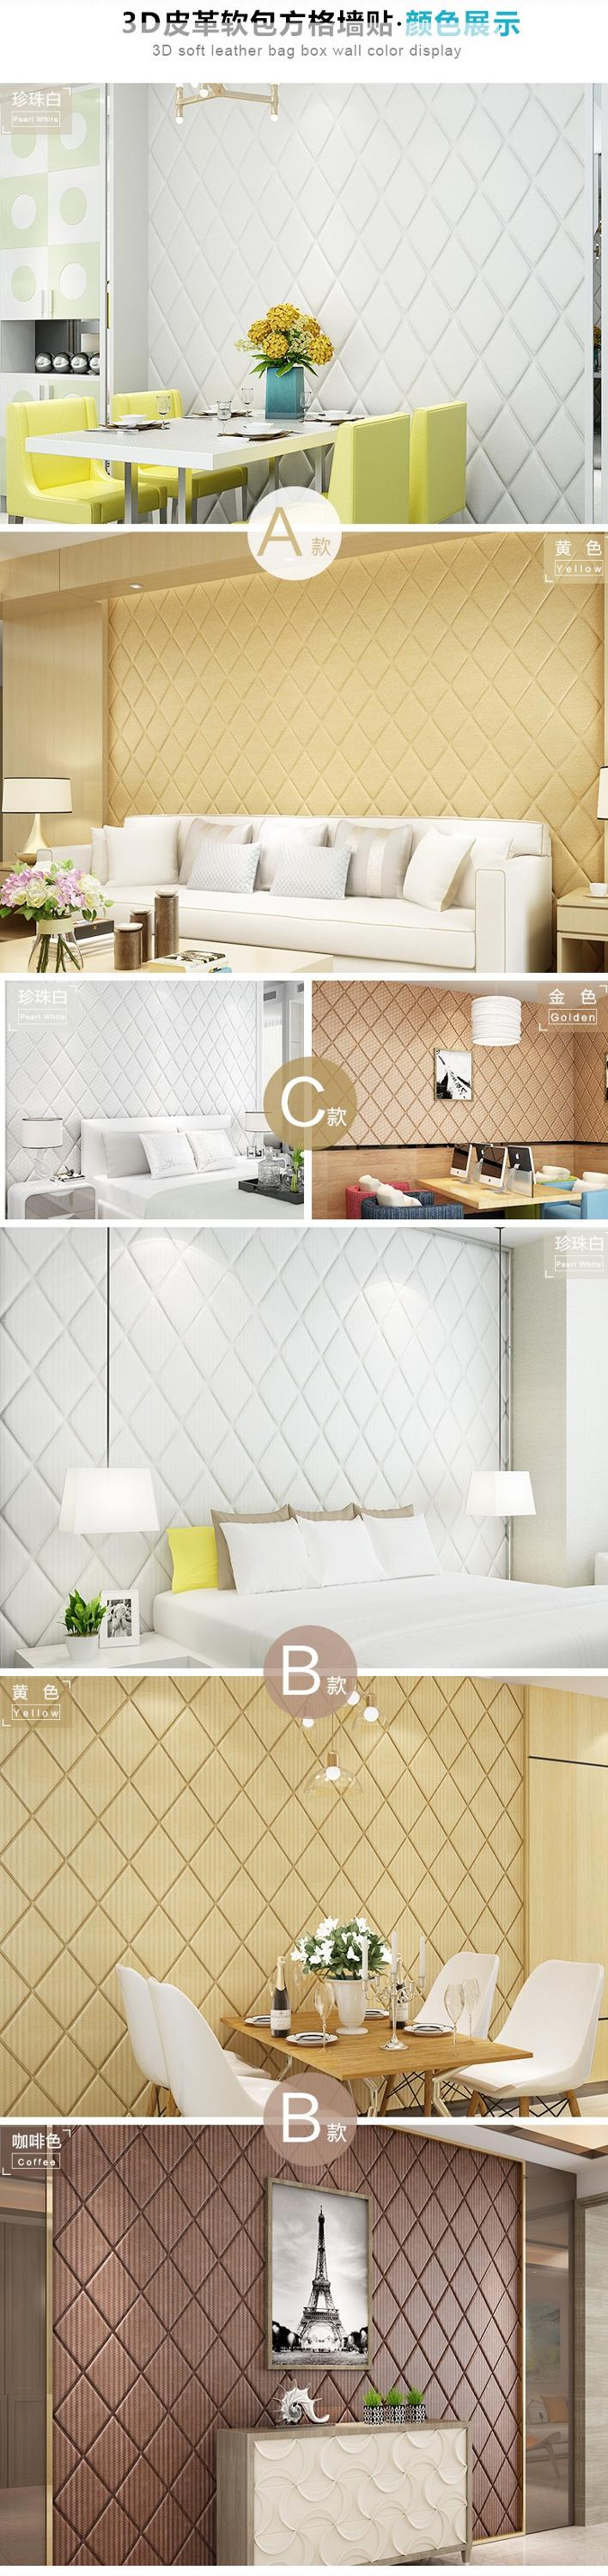 Beautiful Bedroom Wall Decoration 3d Wallpaper For Home Decor - Buy ...